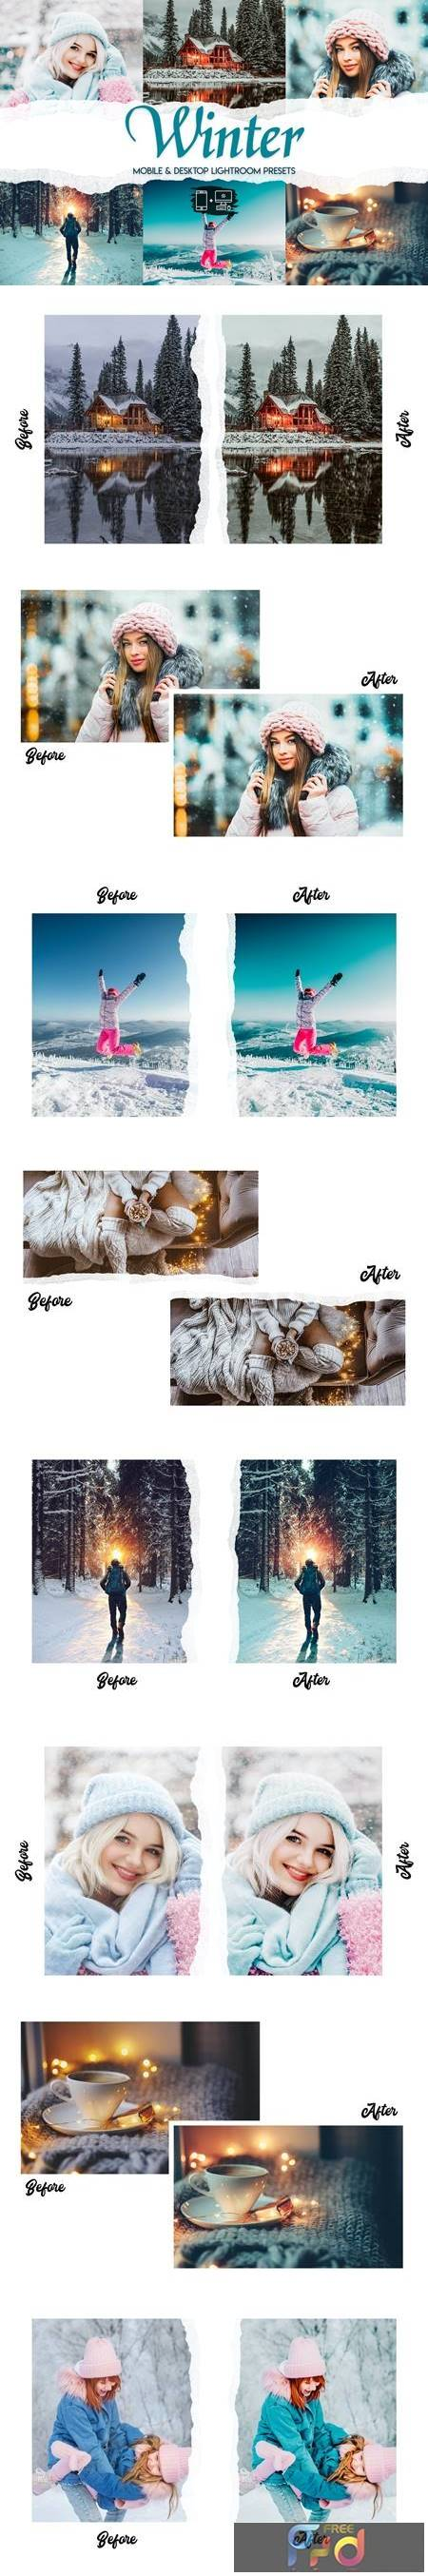 Winter - 15 Premium Lightroom Presets 8SB7LX9 1